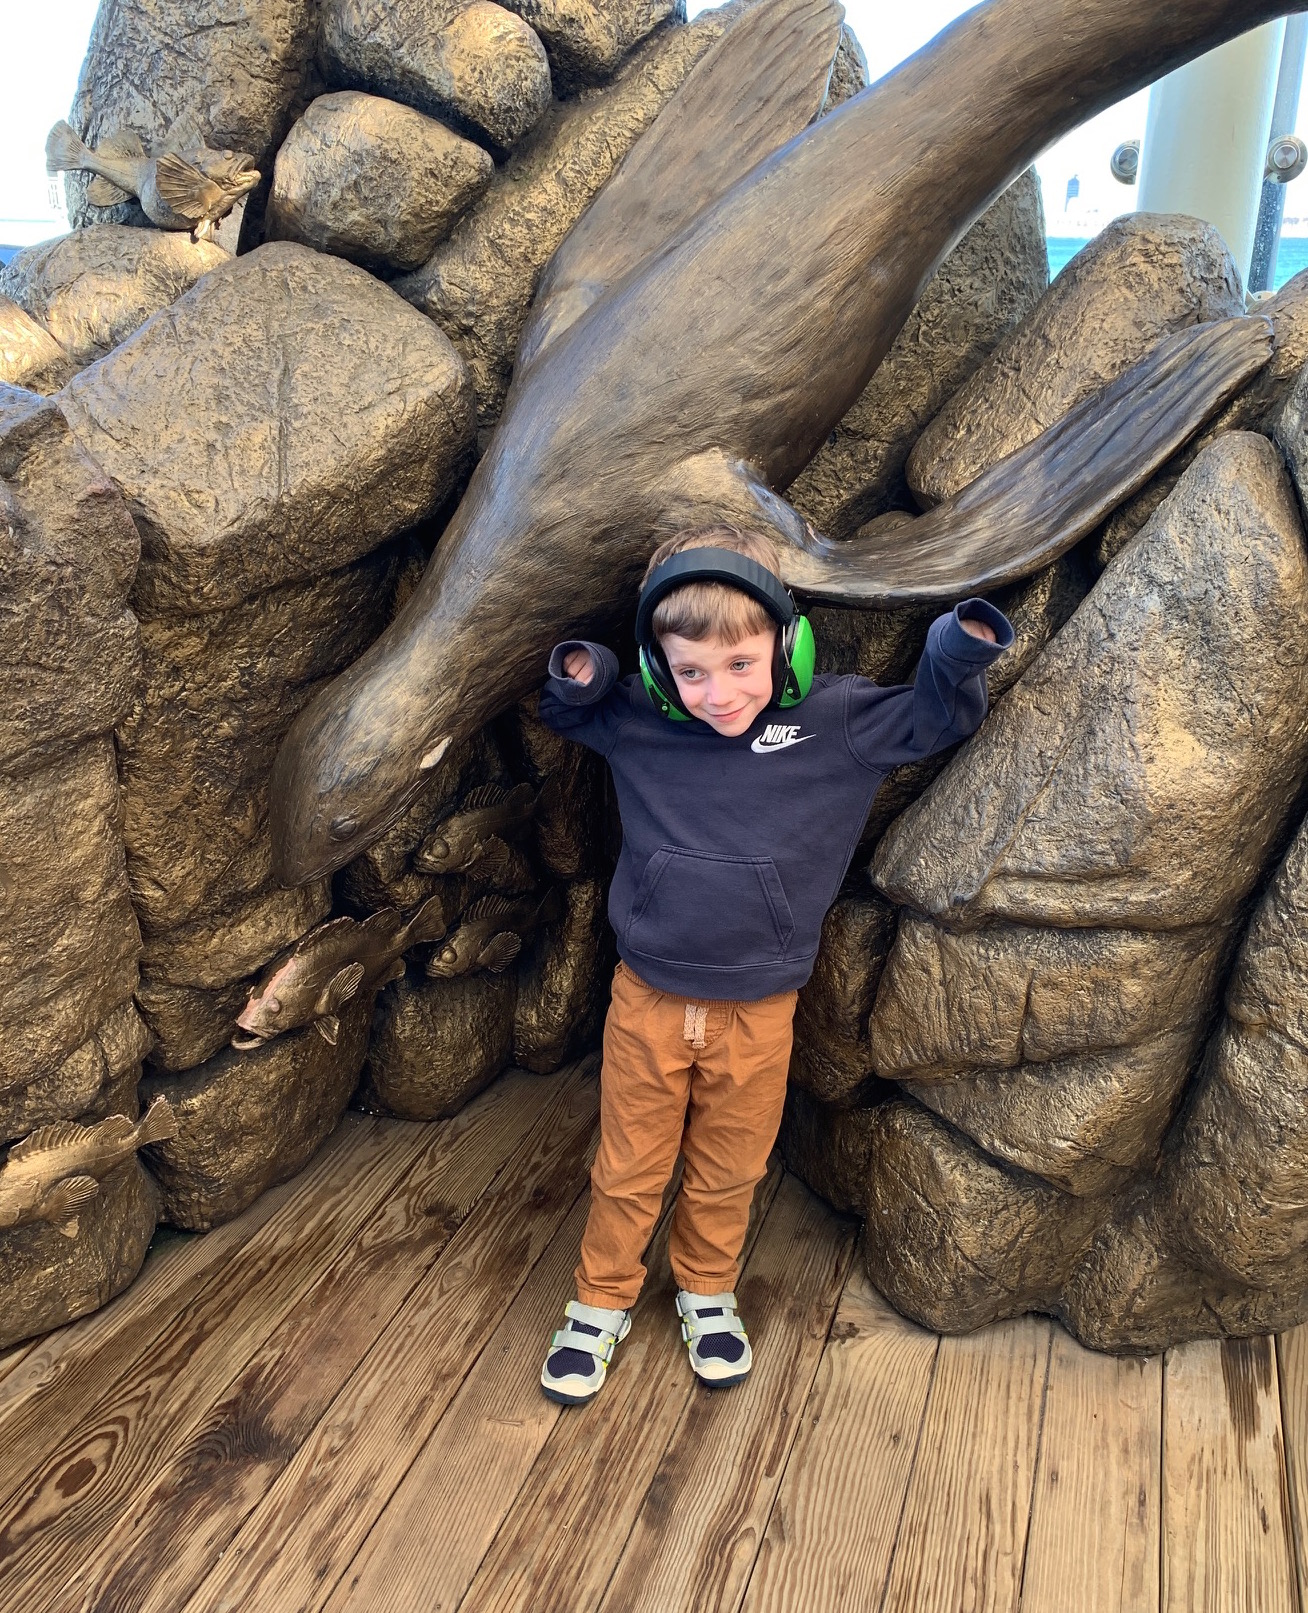 A boy wearing noise-cancelling headphones stands in front of a statue of a seal and fish